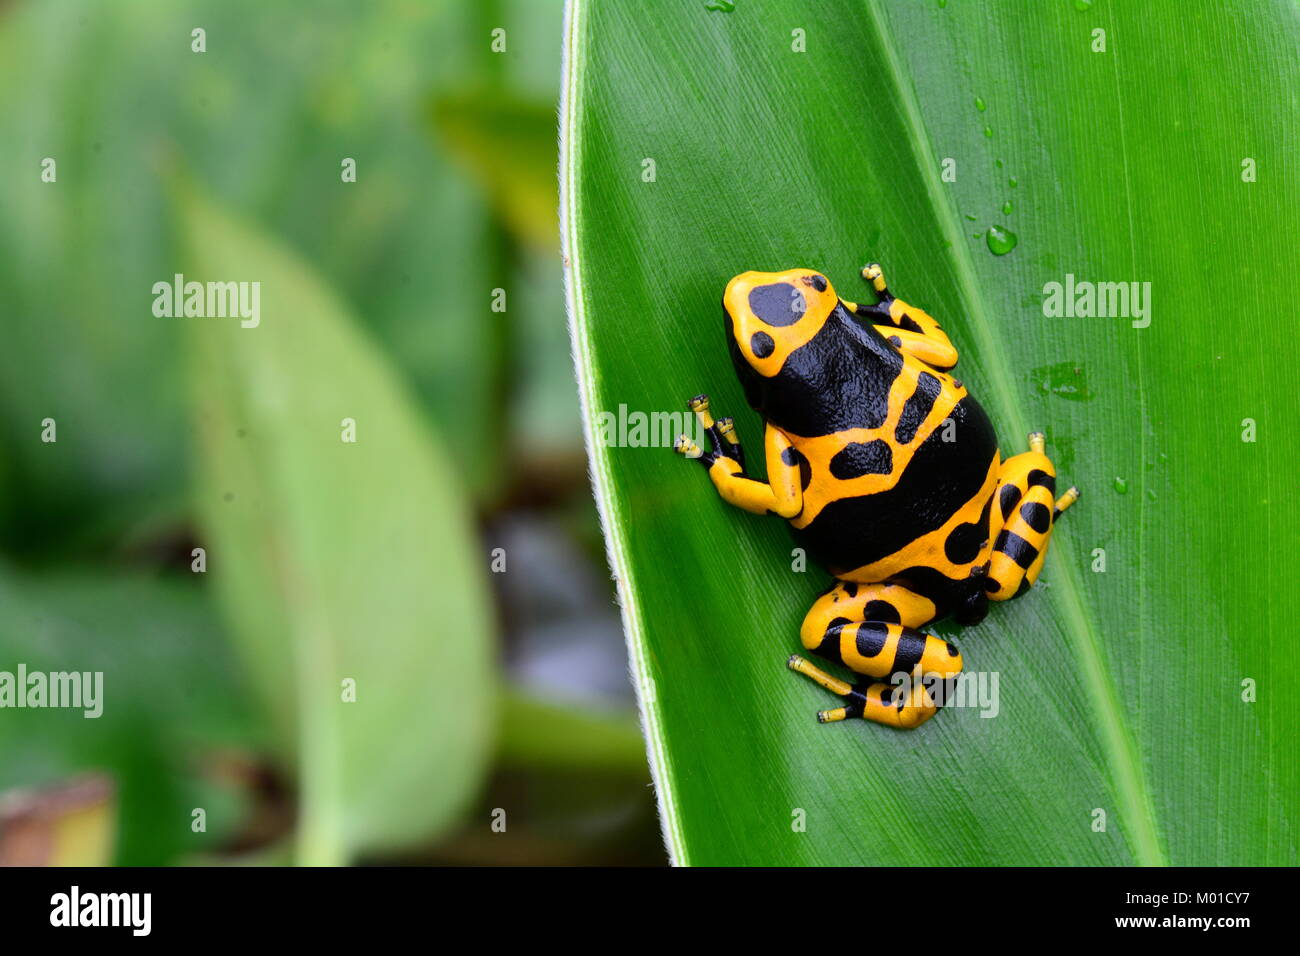 A pretty little bumble bee colored poison dart frog sits on a plant leaf in the gardens. - Stock Image